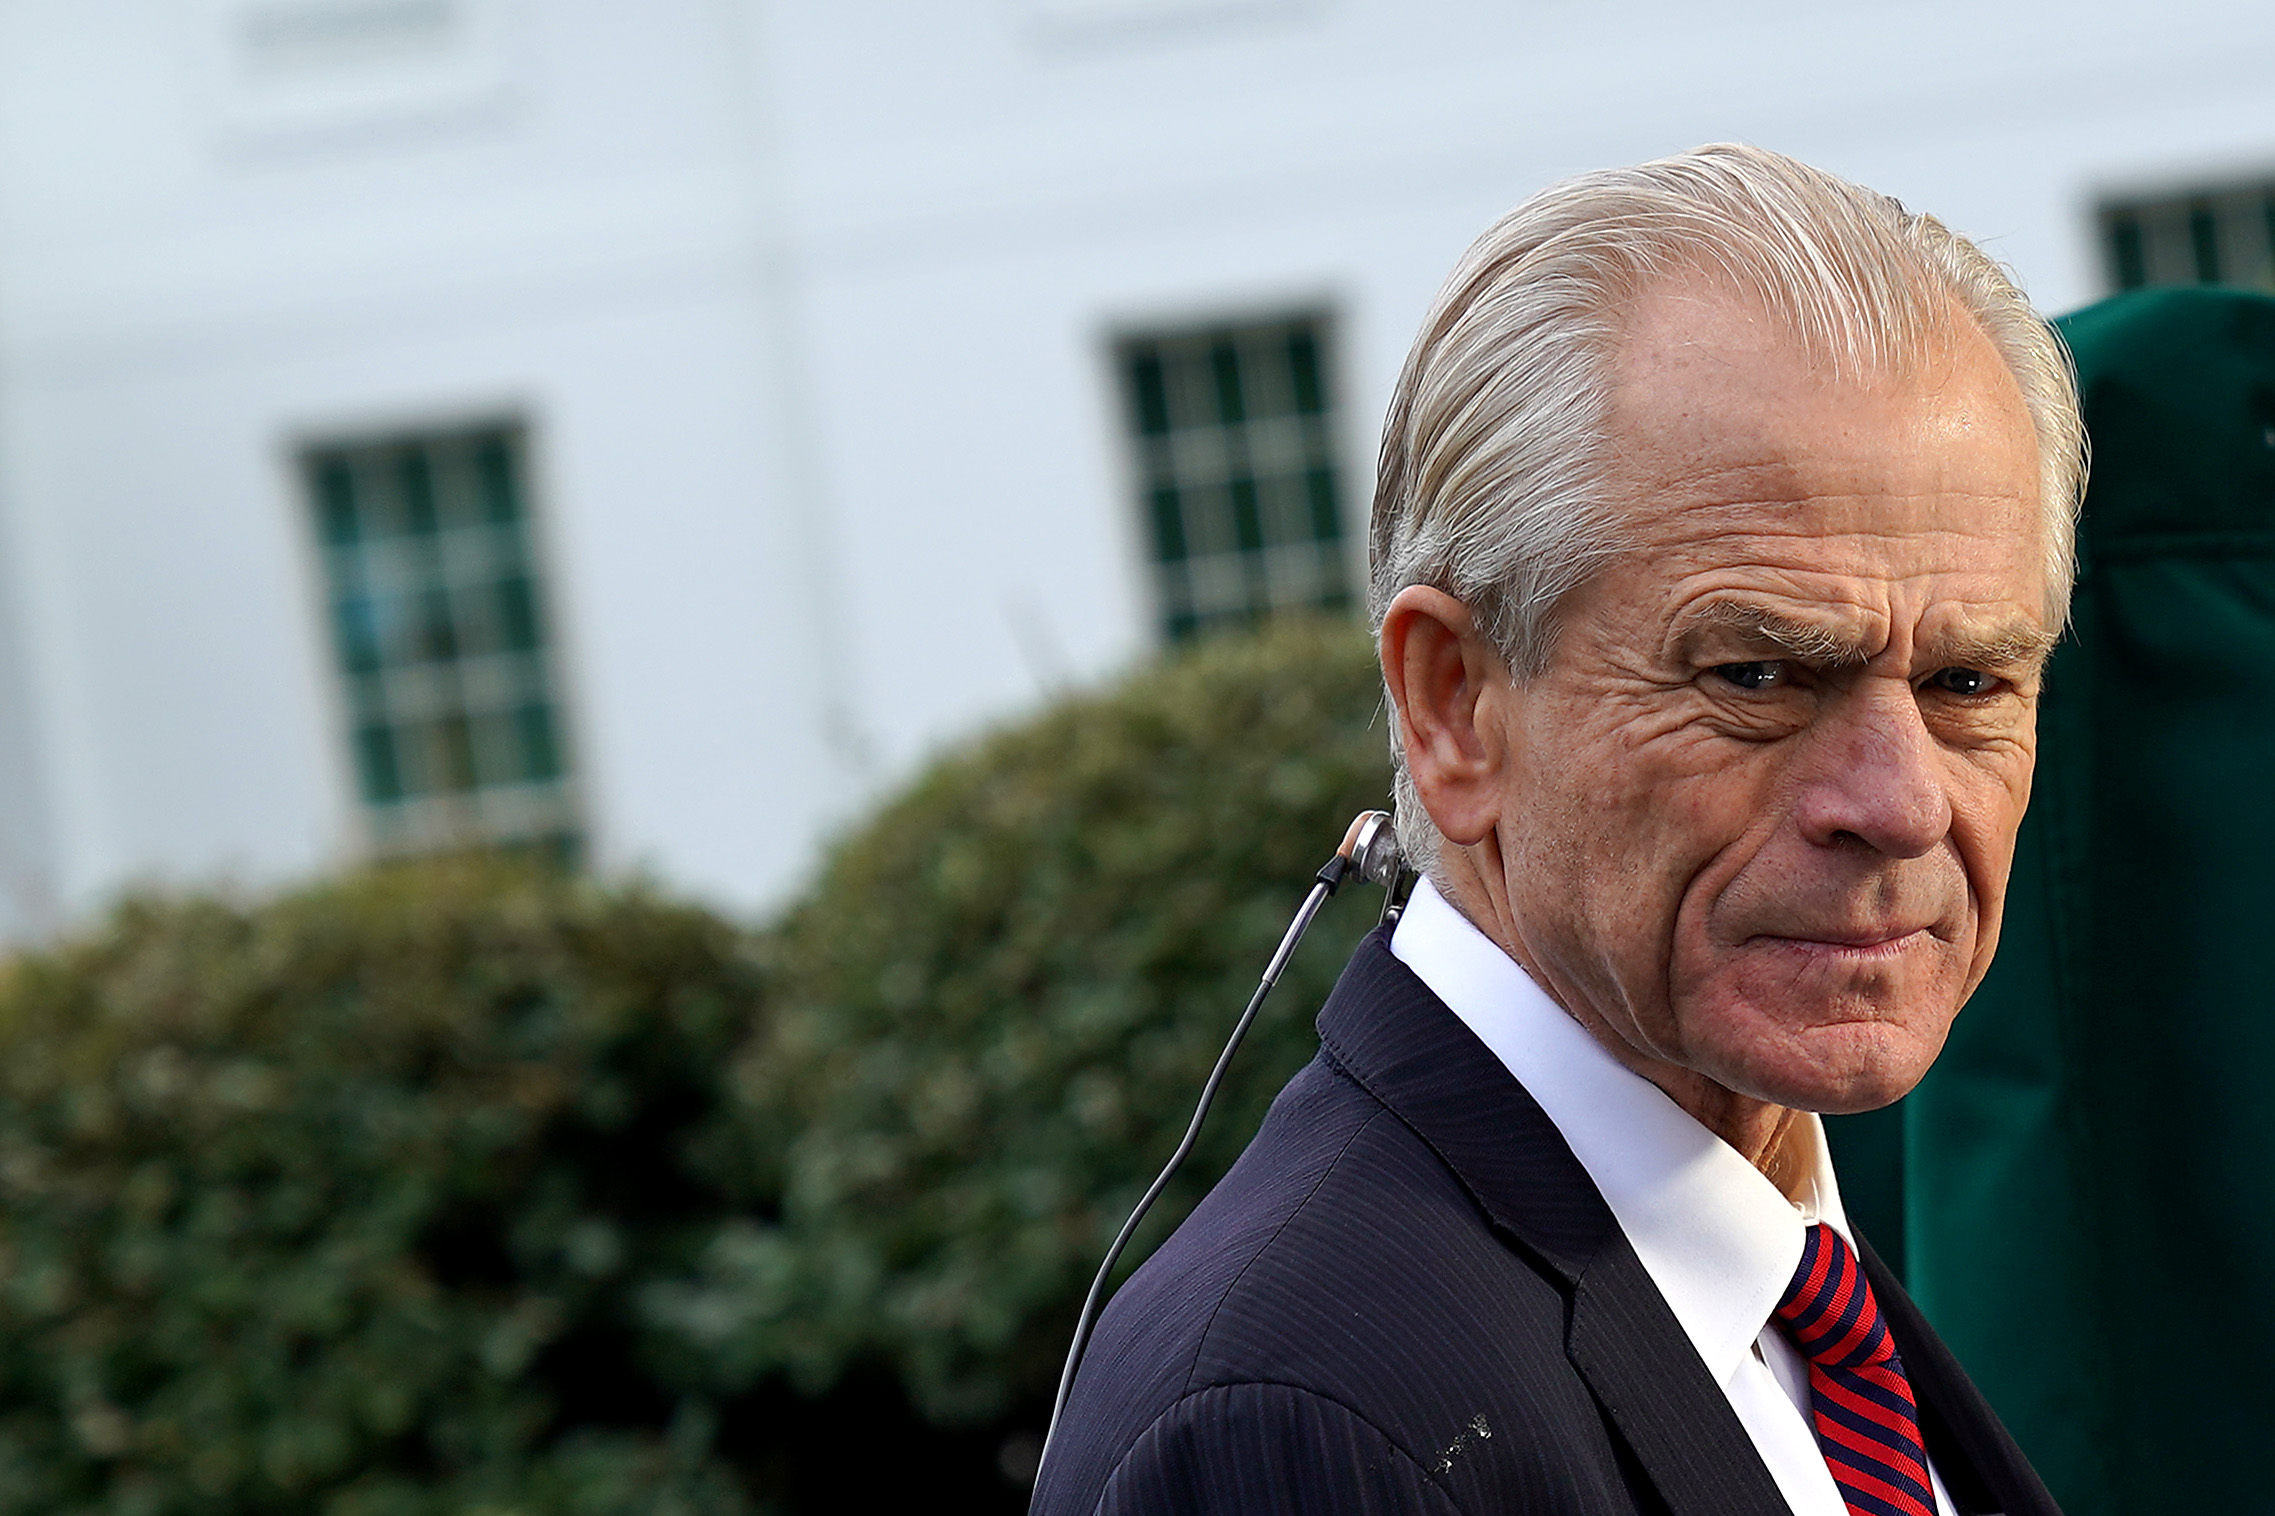 Without proof, Trump's top trade adviser pushed that now-departed NSC official was Anonymous